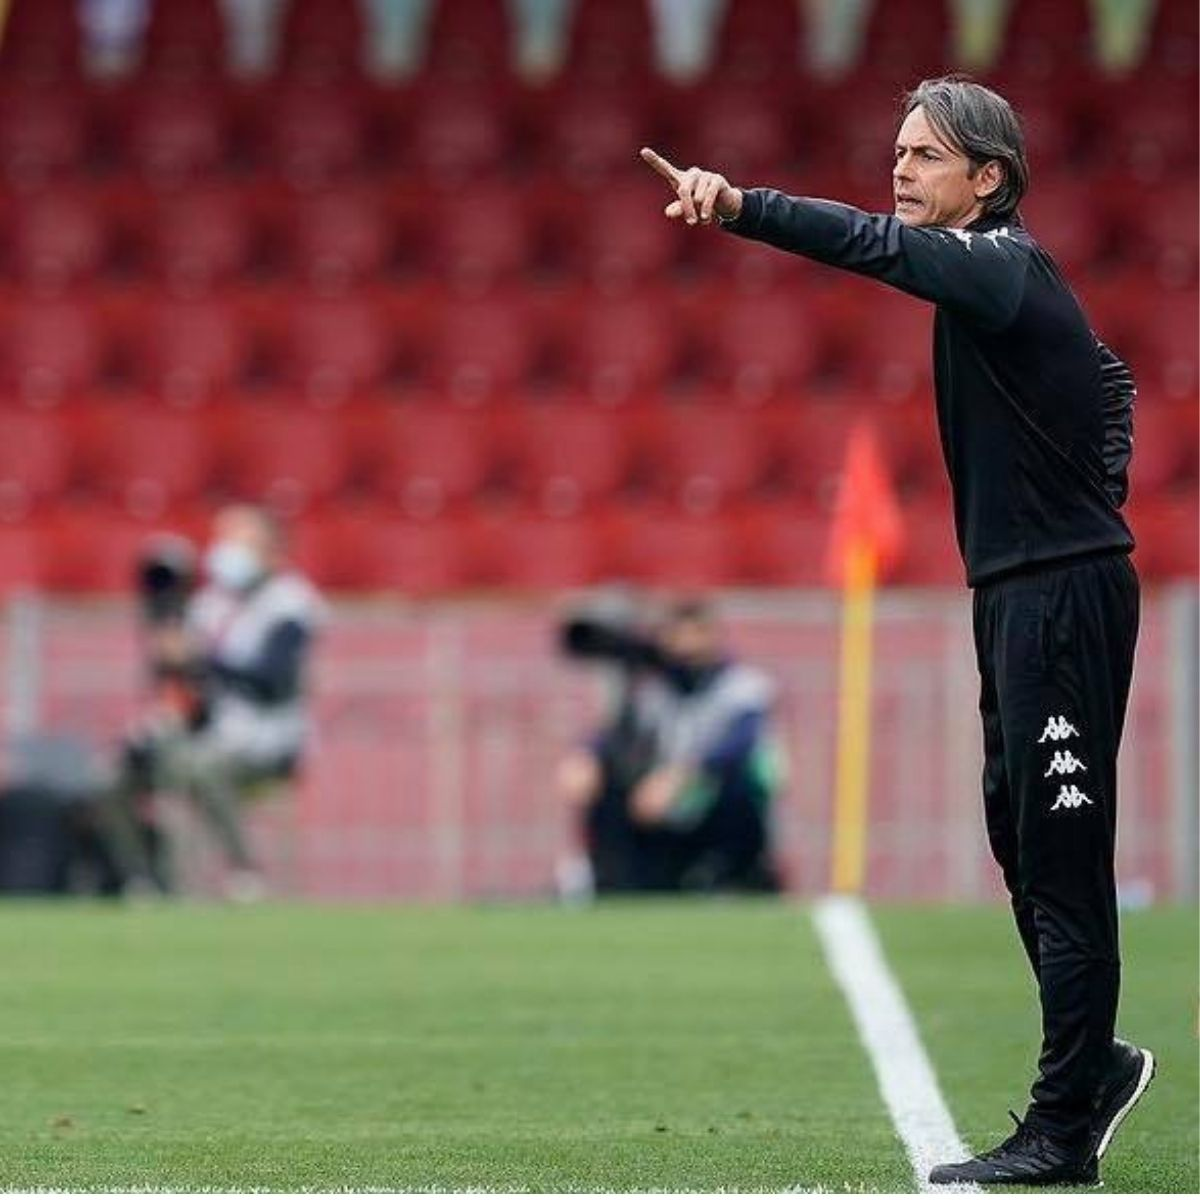 Pippo Inzaghi panchina d'argento